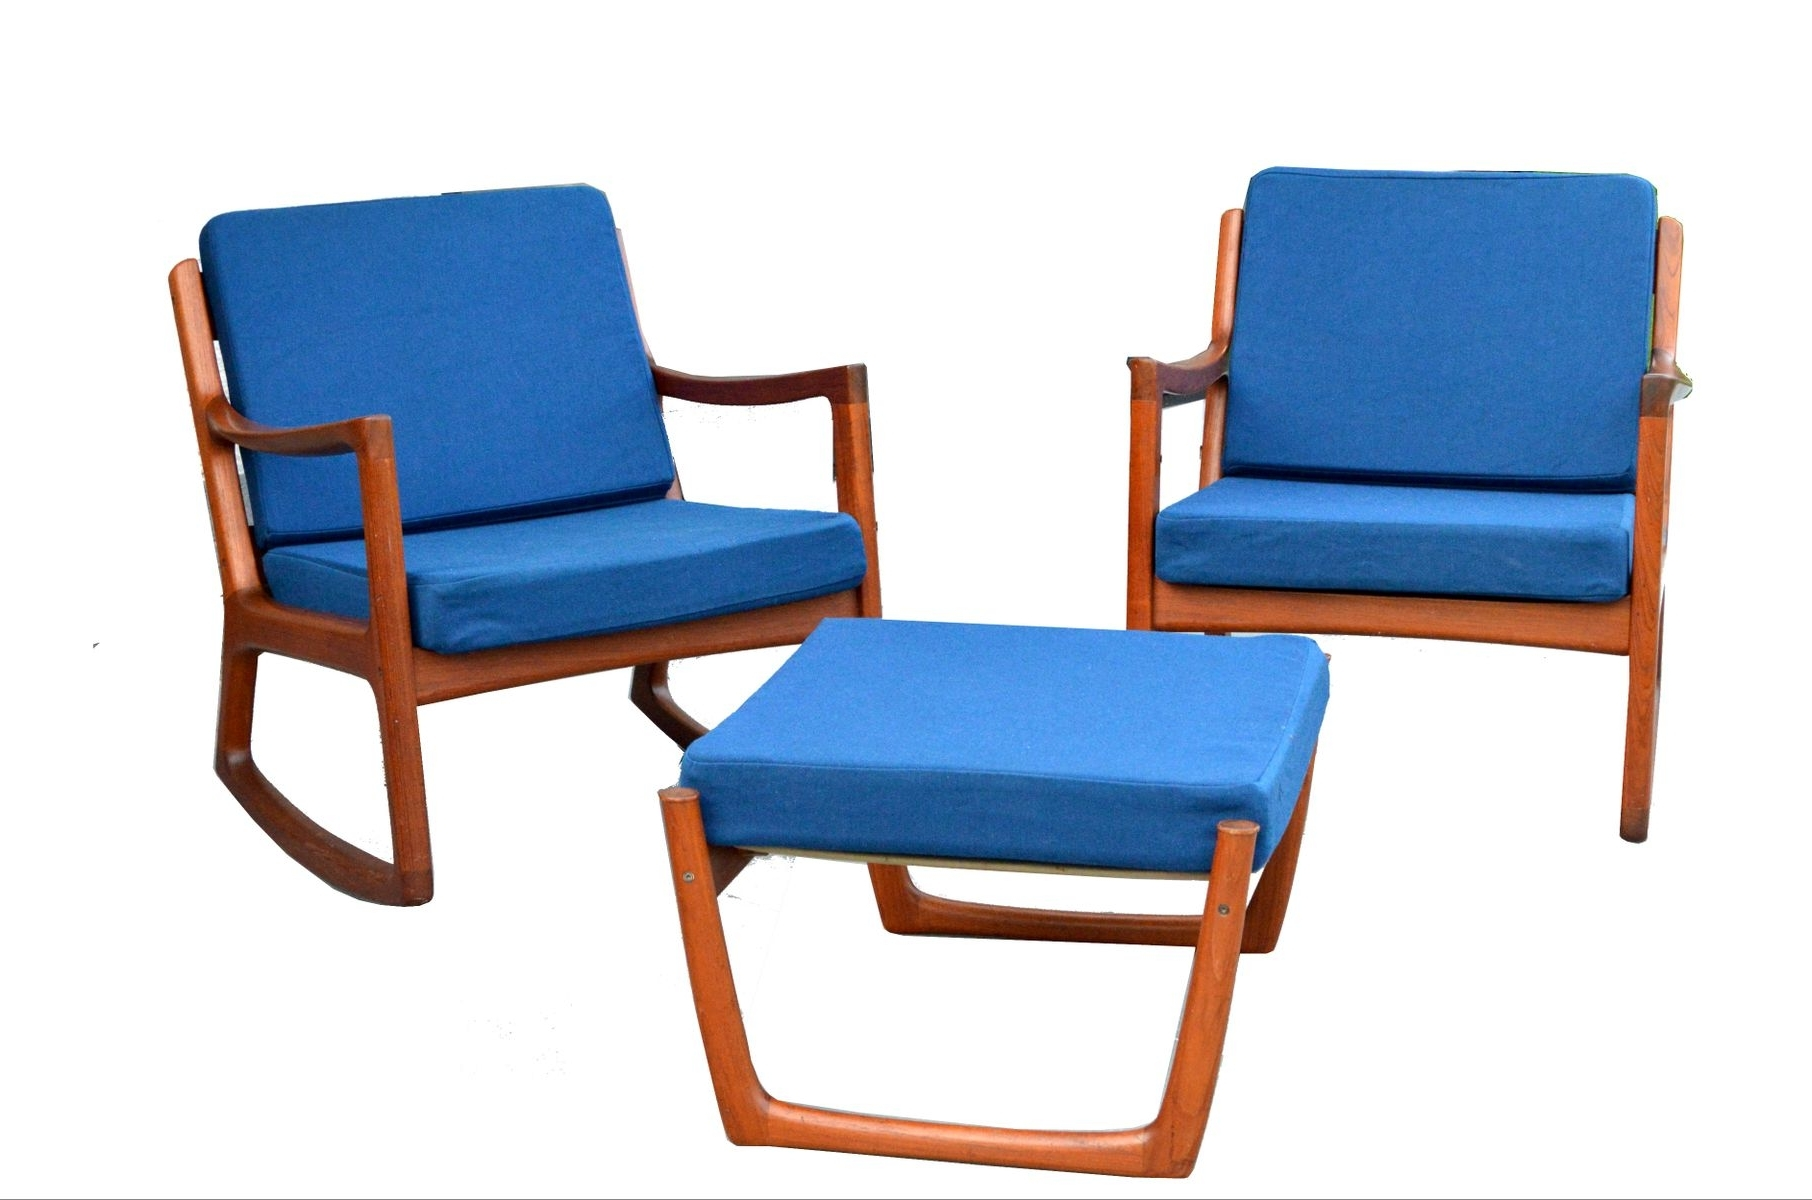 Rocking Chairs With Footstool Throughout Most Popular 2 Senator Rocking Chairs & 1 Footstoolole Wanscher For France (View 8 of 15)